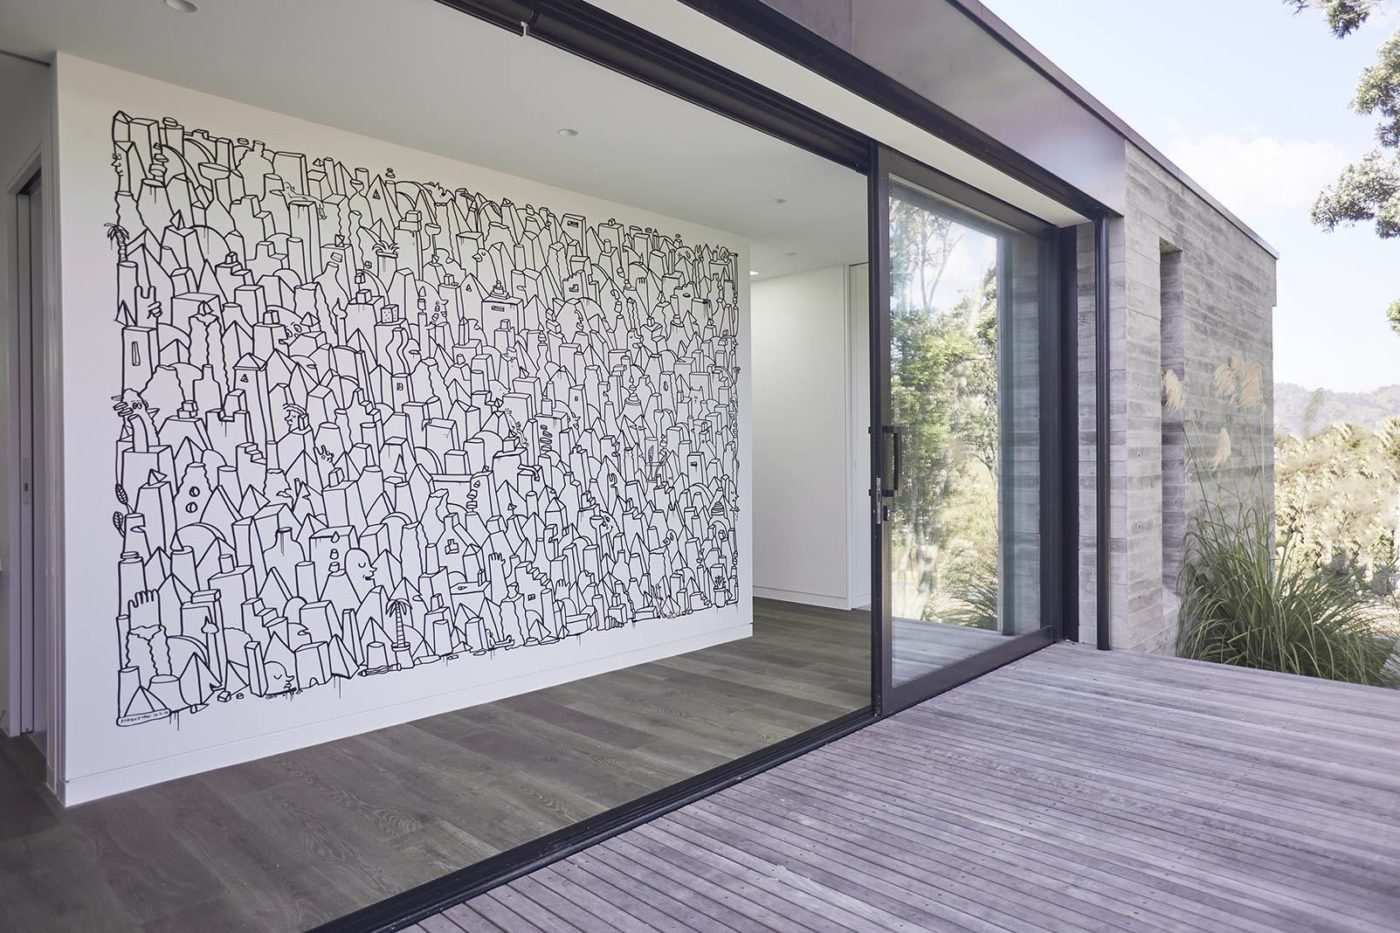 Private commission, Tairua, Coromandel. Architect: Neu Architecture